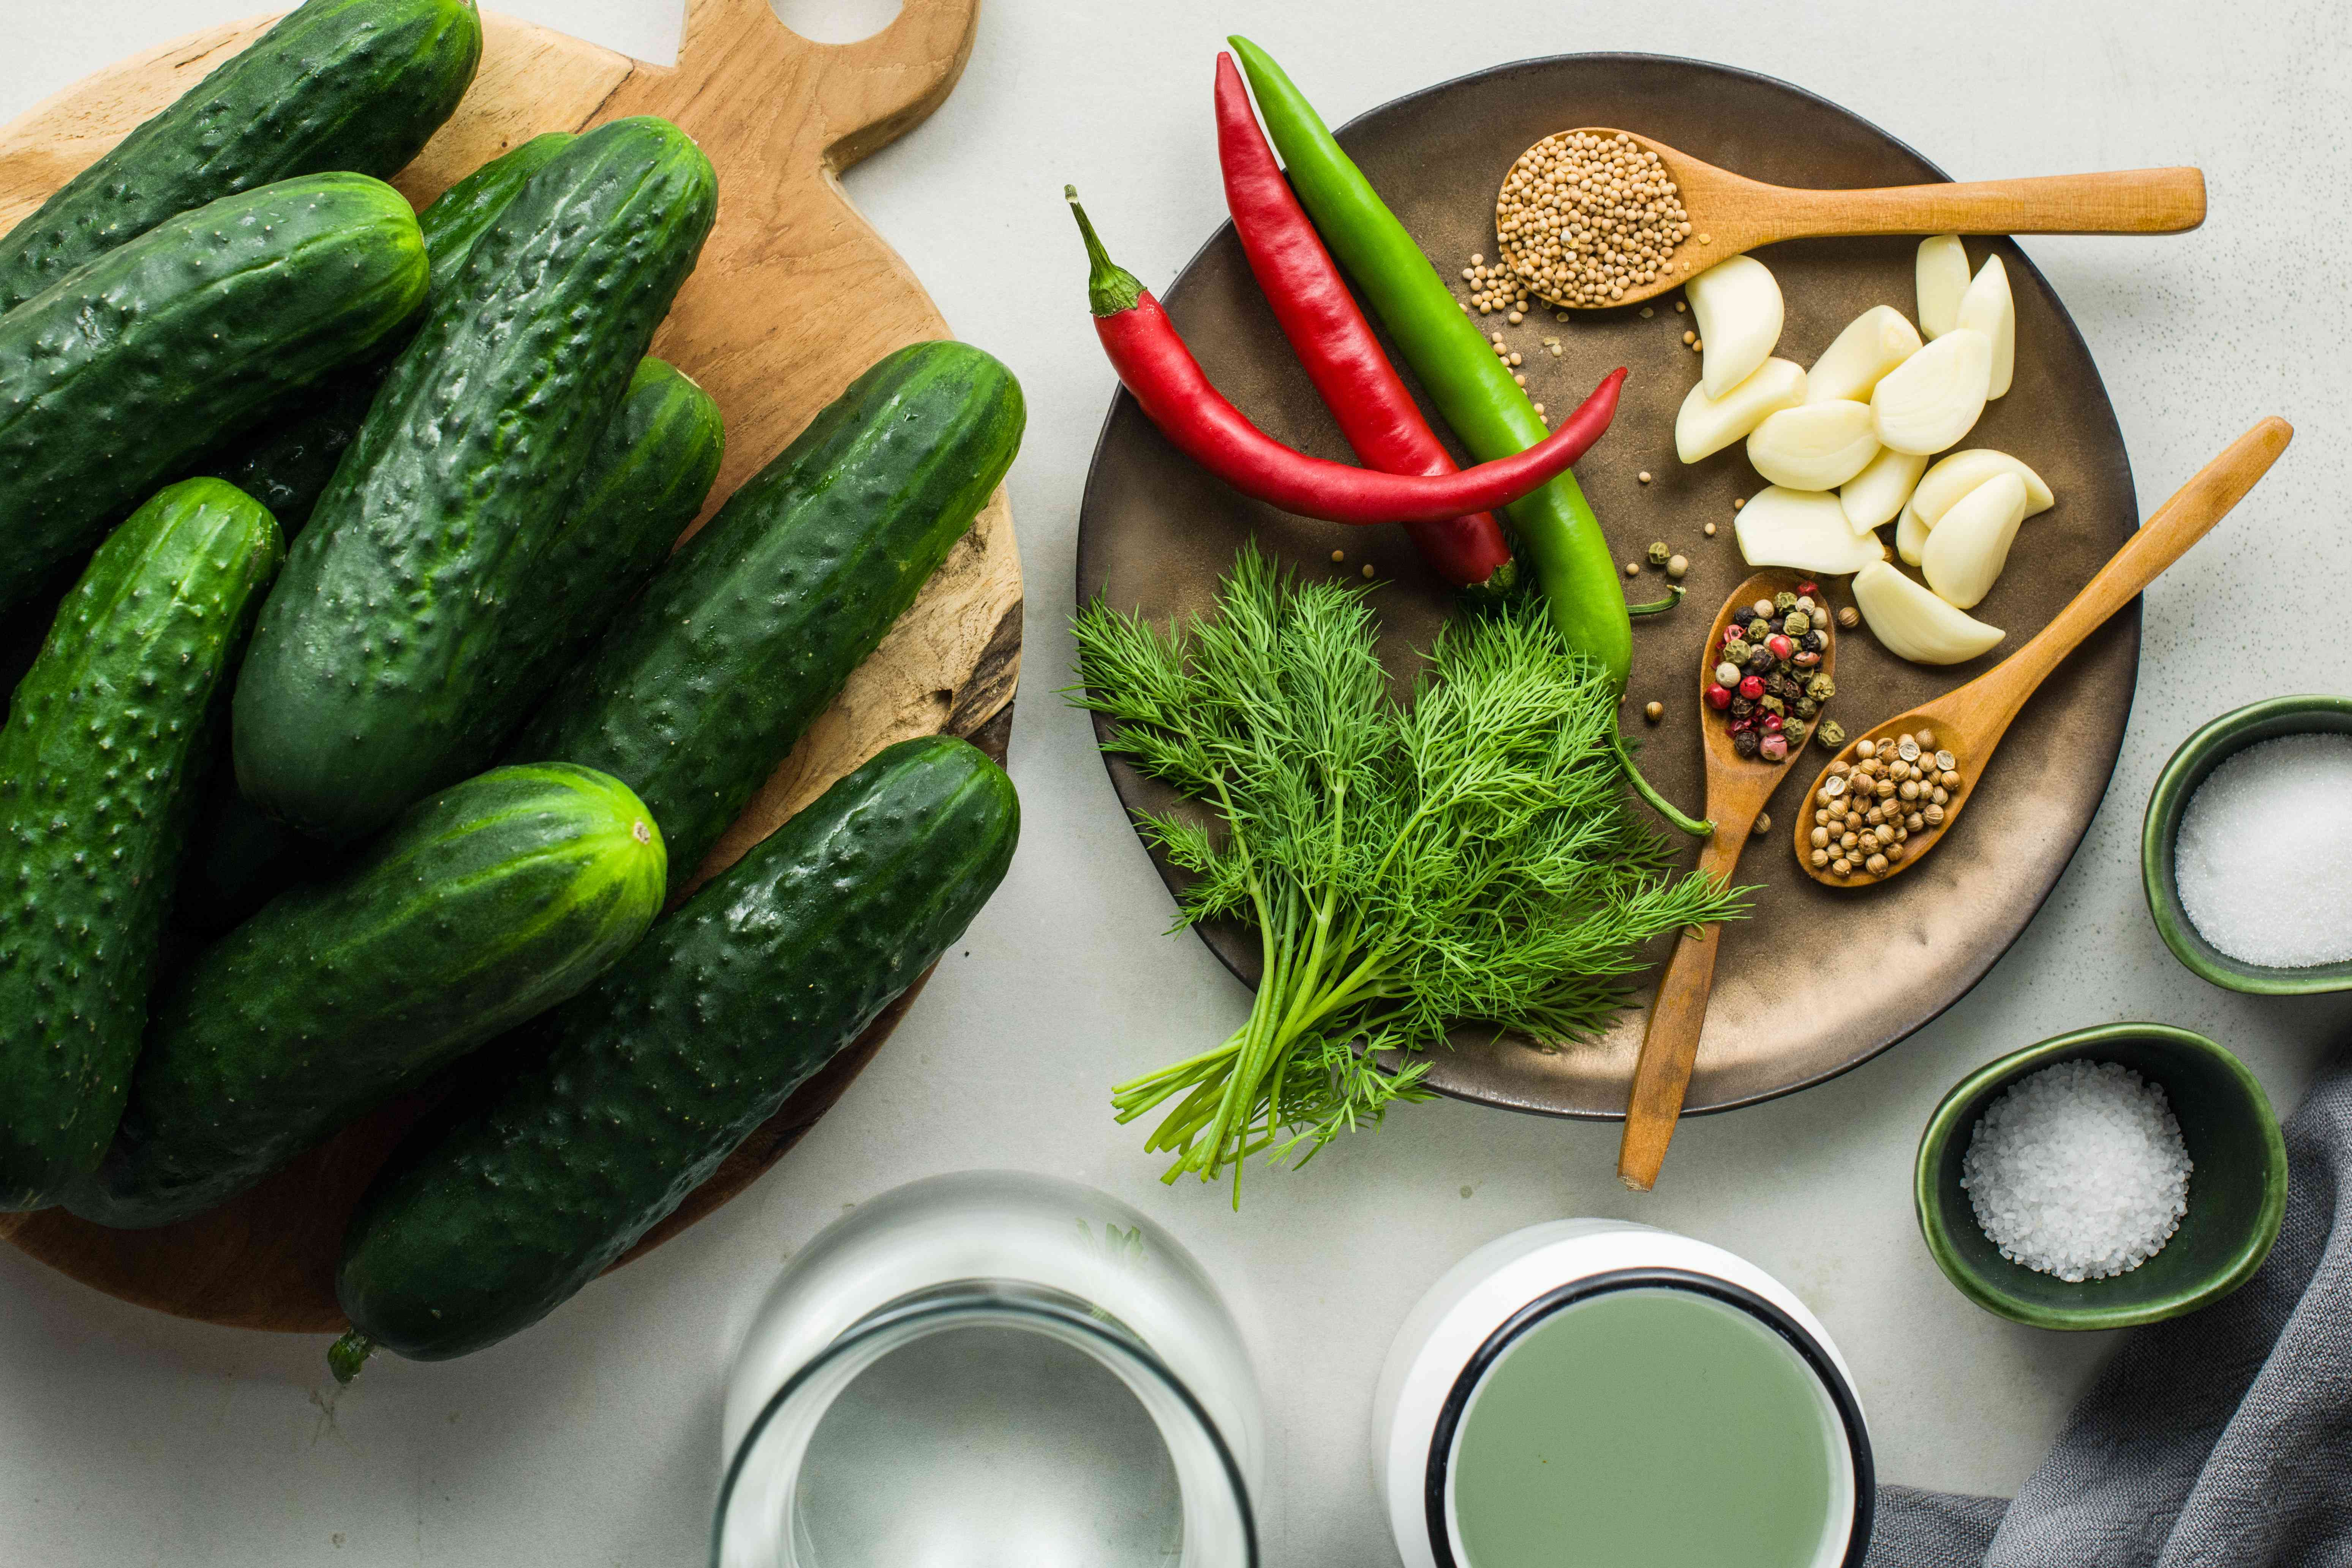 Ingredients for smashed pickles recipe